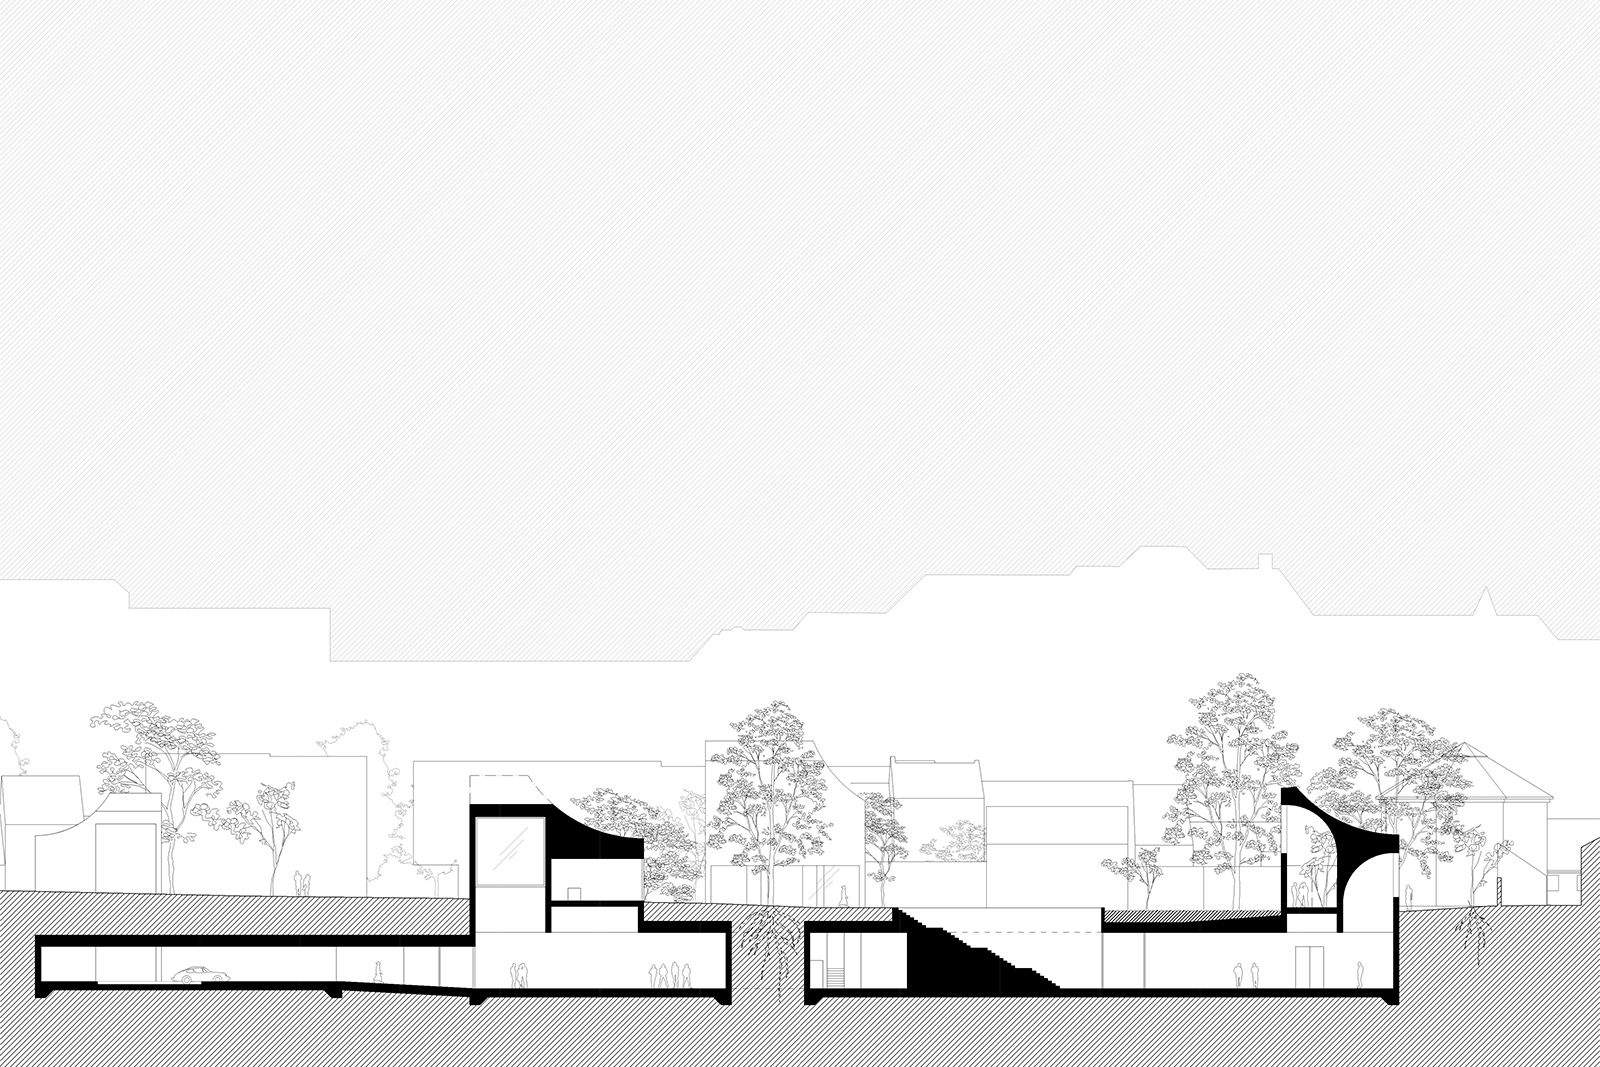 """H C ANDERSEN MUSEUMPublic building and park, Odense, Denmark, 2014Competition, 2nd PrizeClients: Odense City Museums and RealdaniaSize: 3.500 sq mOur proposal """"One Garden, Seven Characters"""" reunites the fragmented site for the new Hans Christian..."""